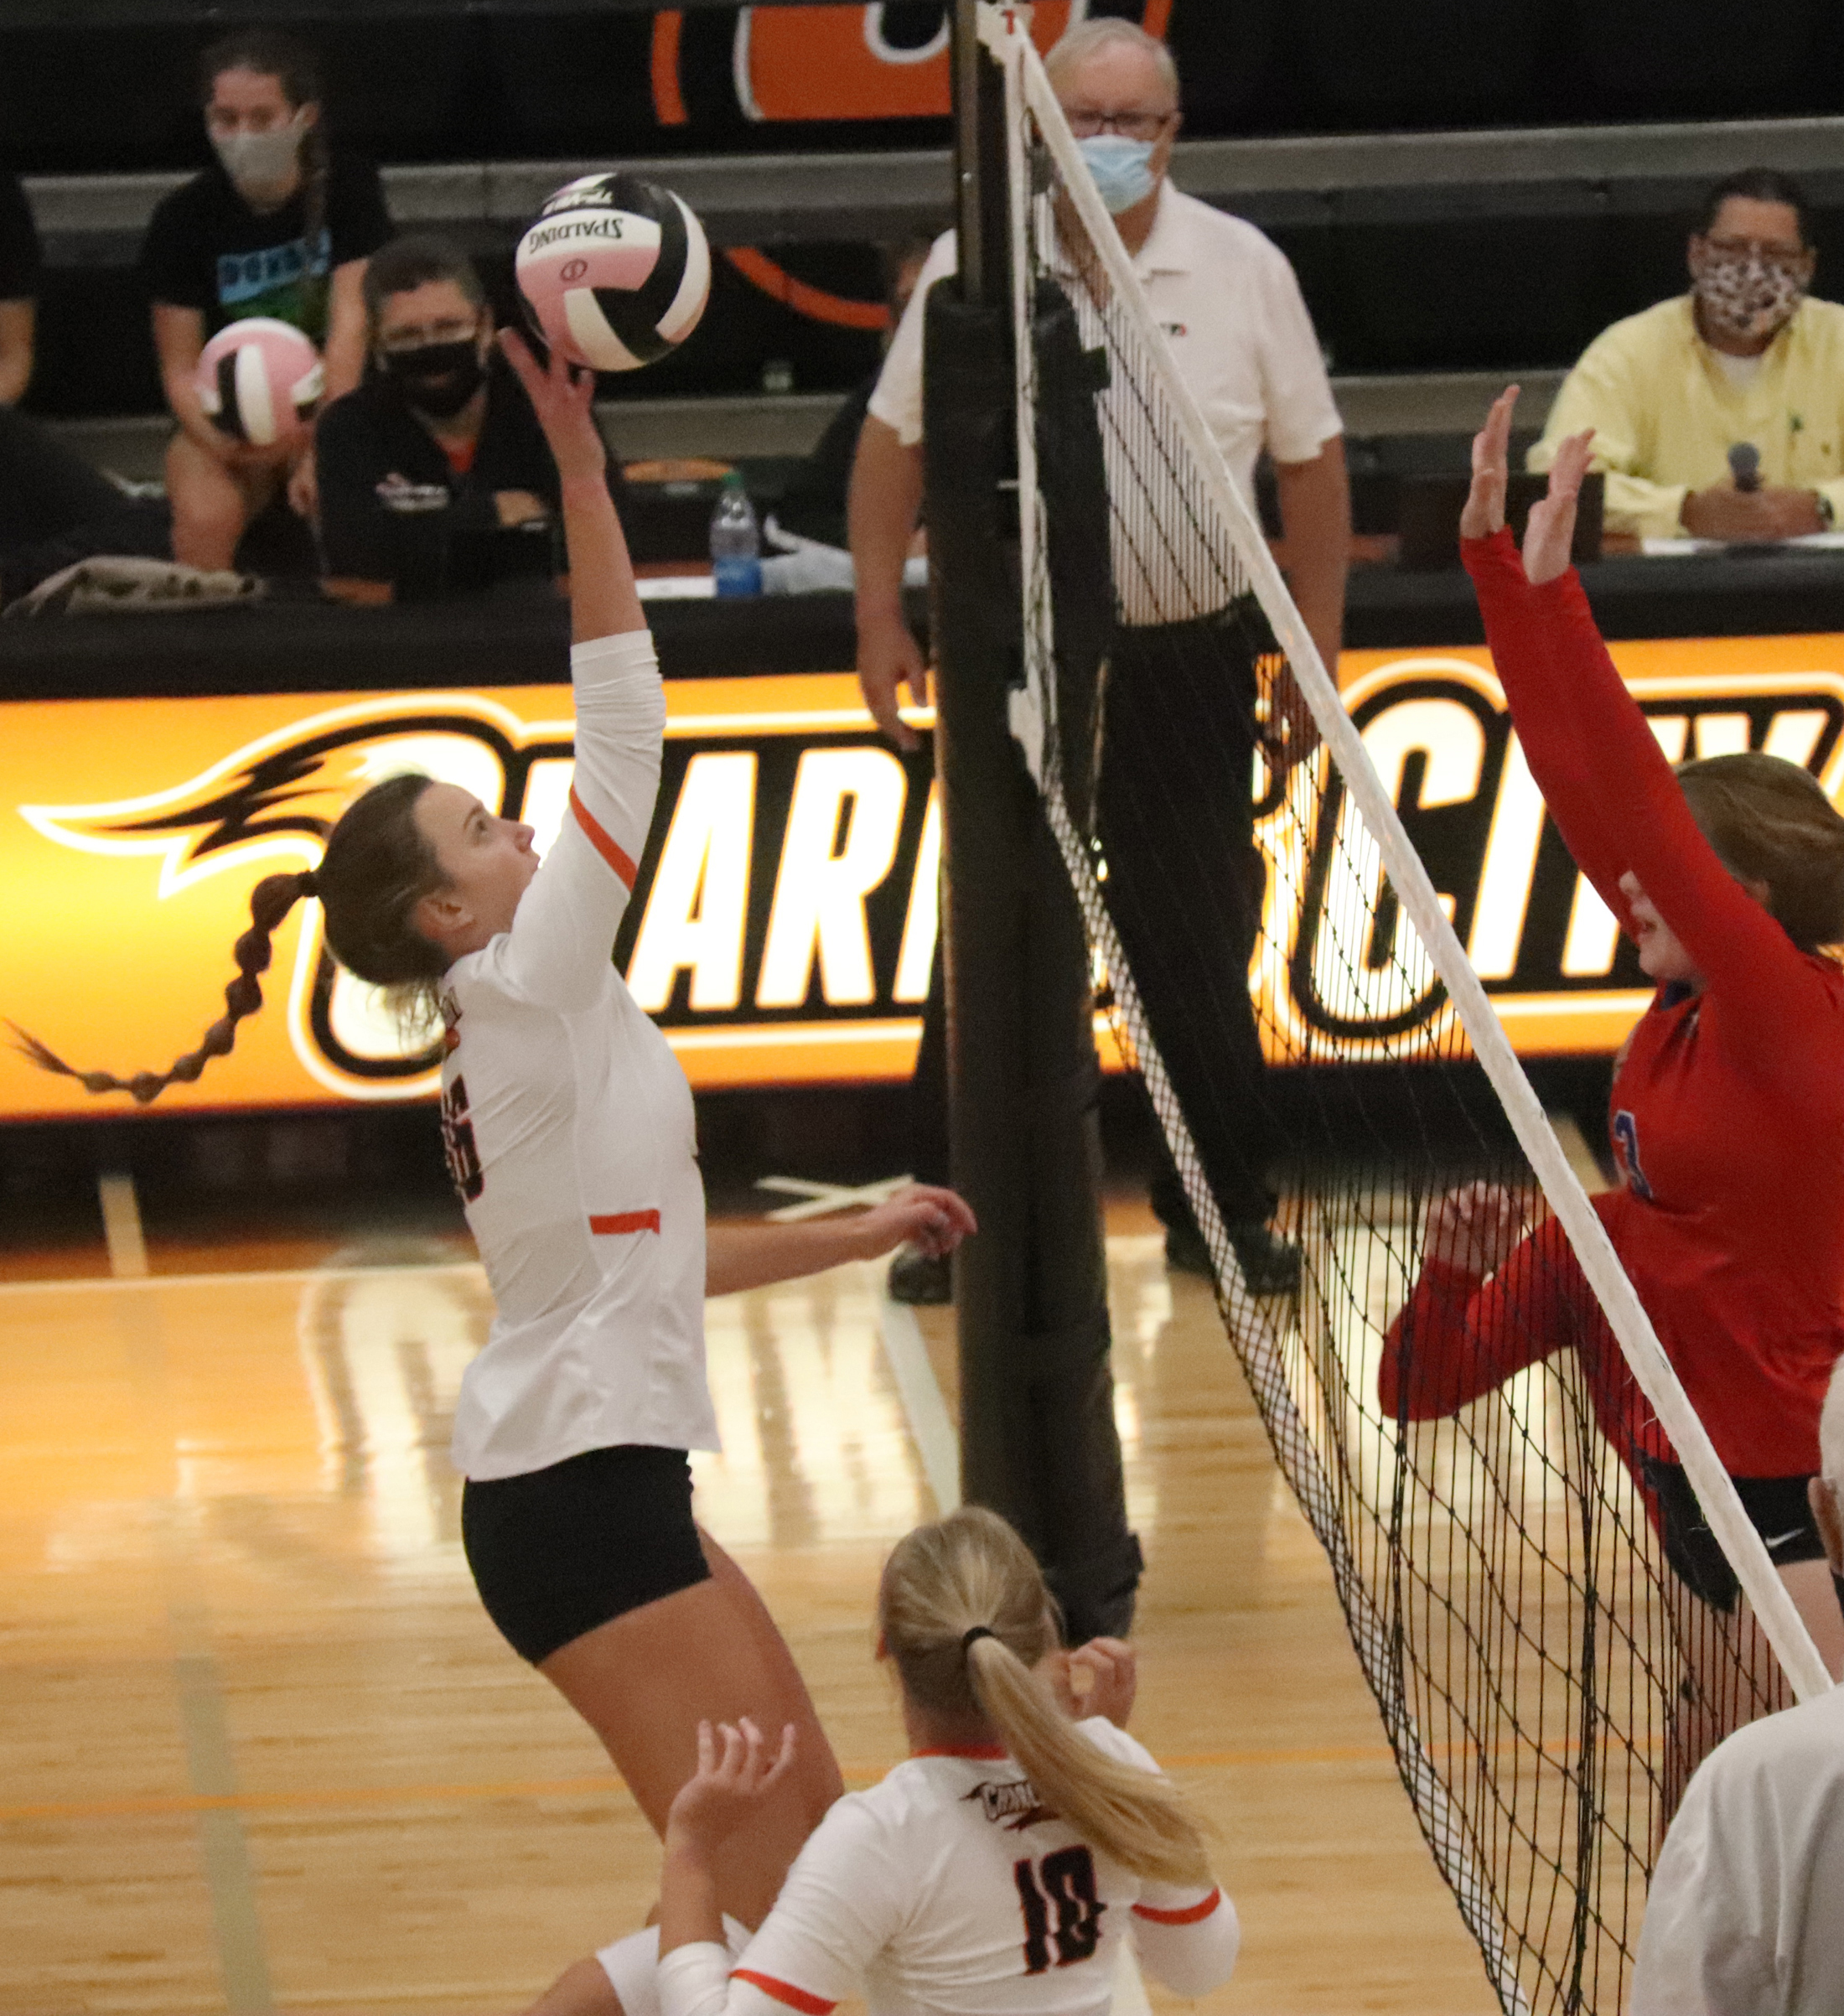 Danielle Stock named to All-Northeast Iowa Conference Volleyball First Team